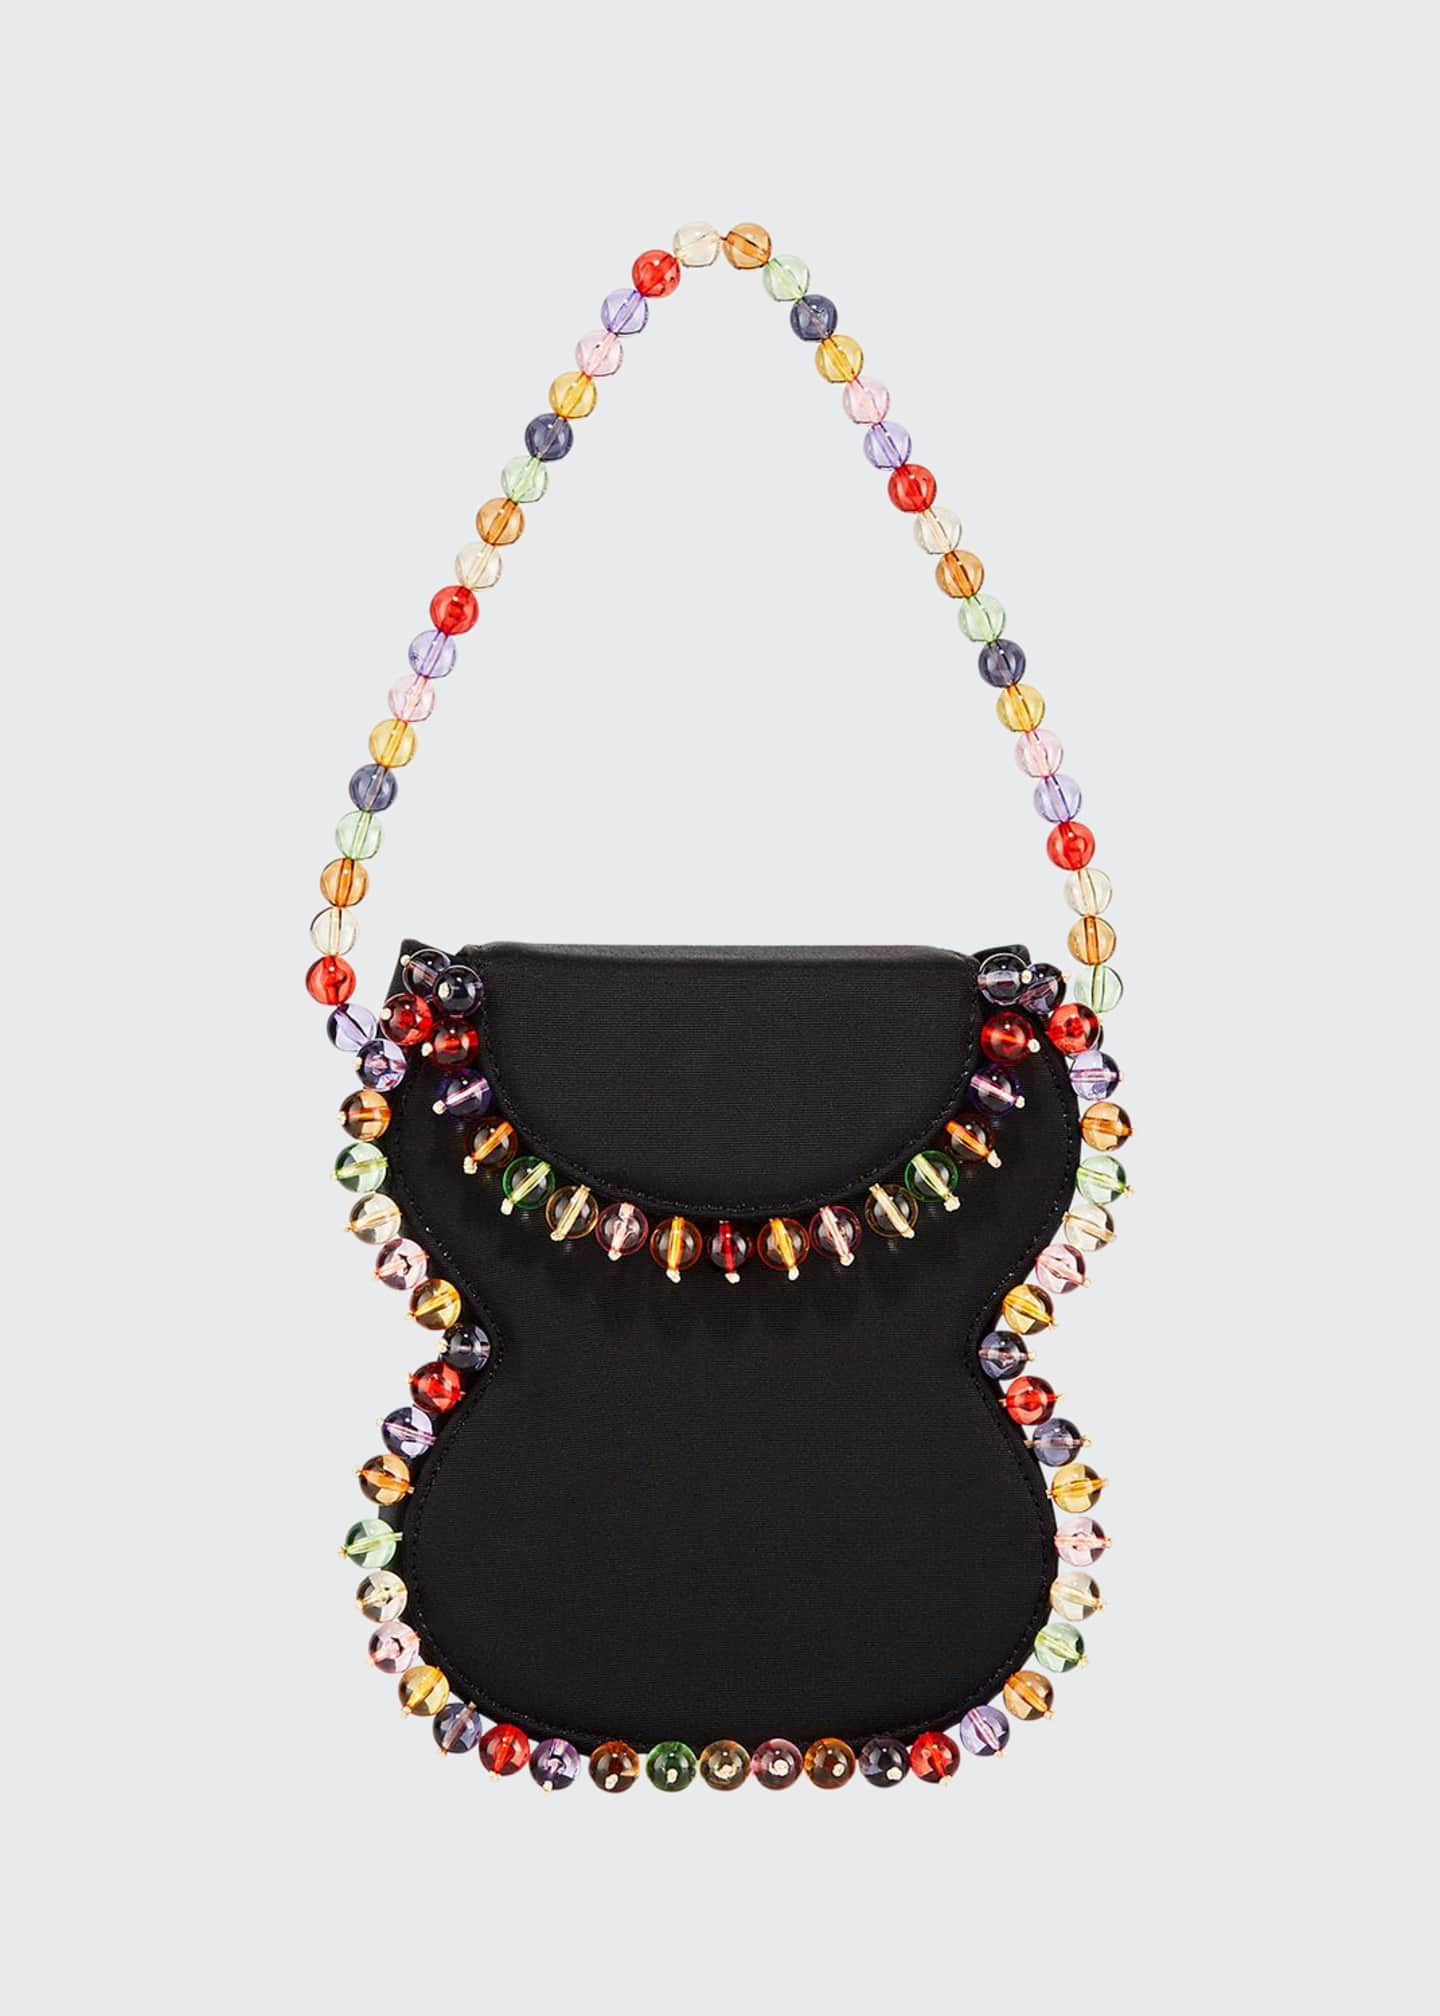 Image 1 of 3: Frida Beaded Grosgrain Top-Handle Bag